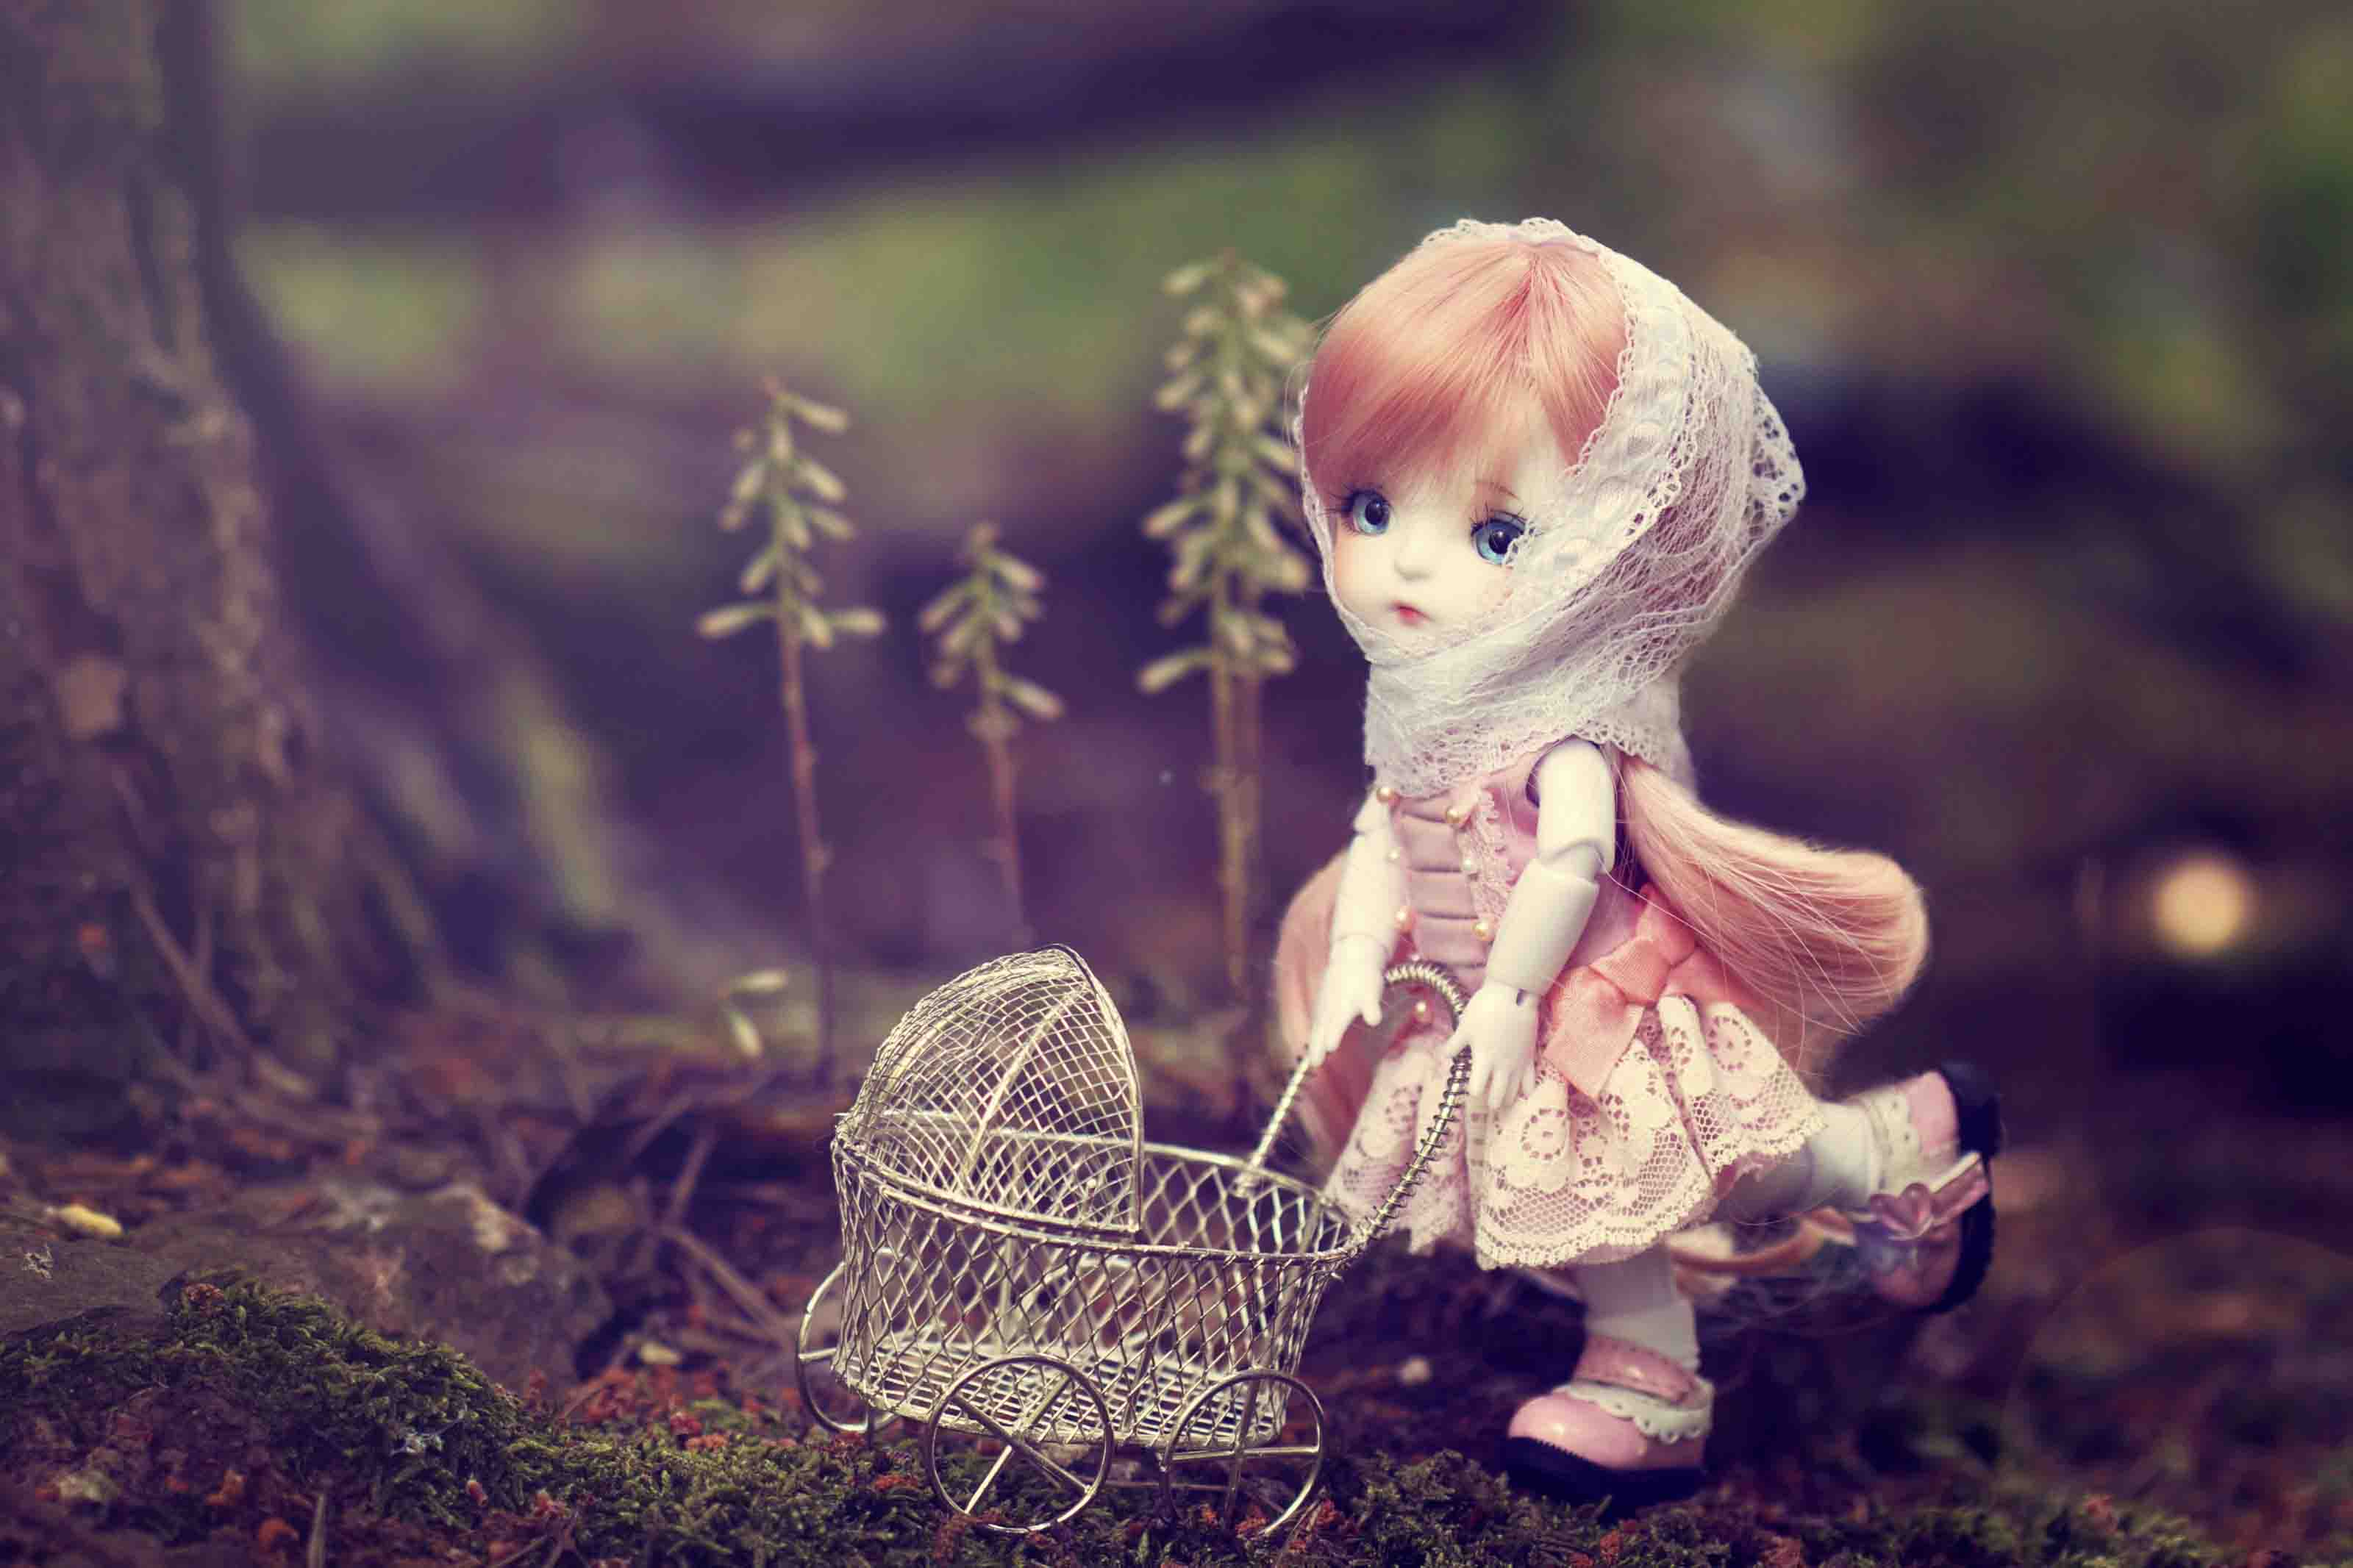 Hd wallpaper doll - Barbie Cute Love Images